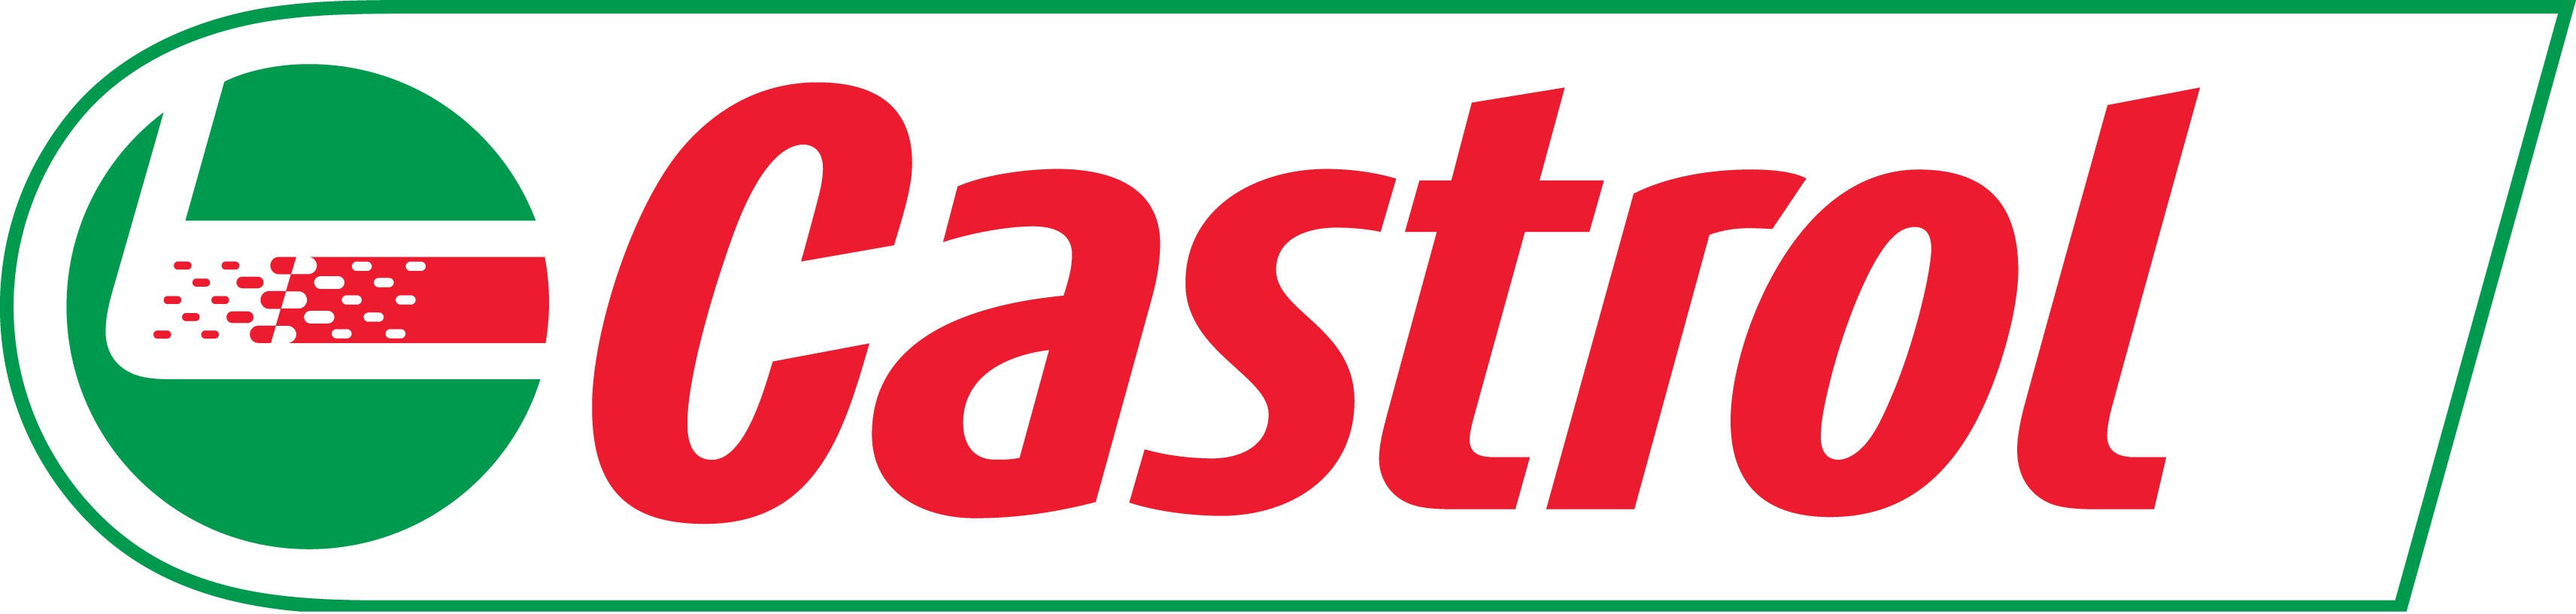 Castrol Logo Wallpaper